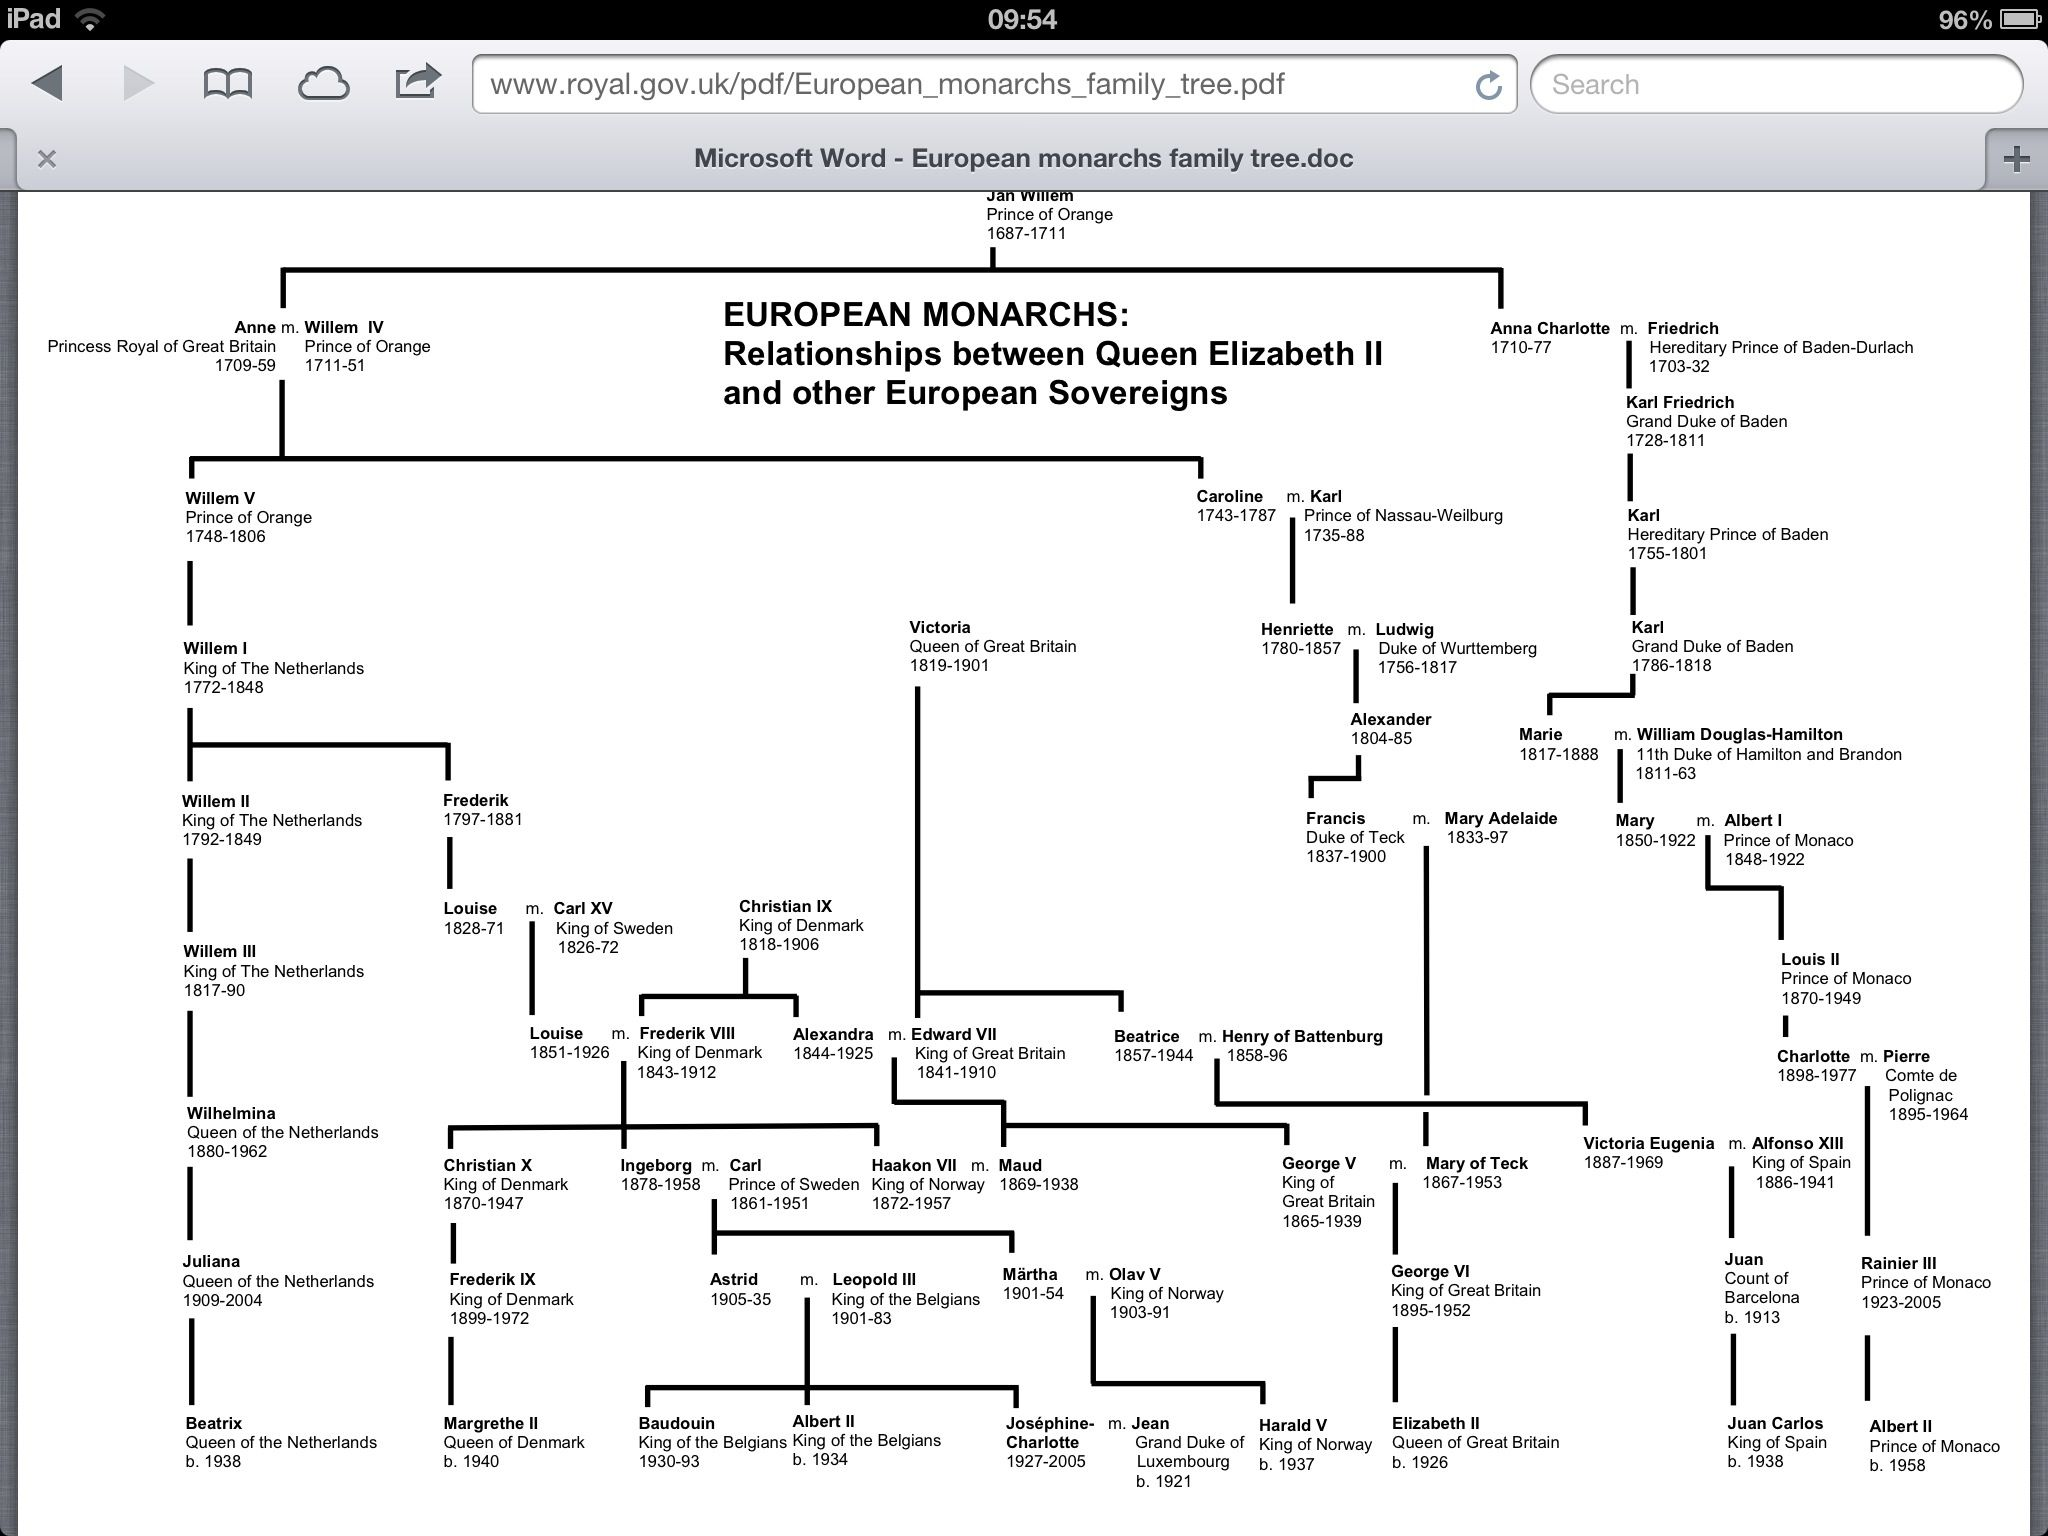 European monarchs and their relationships to Her Majesty Queen Elizabeth II.